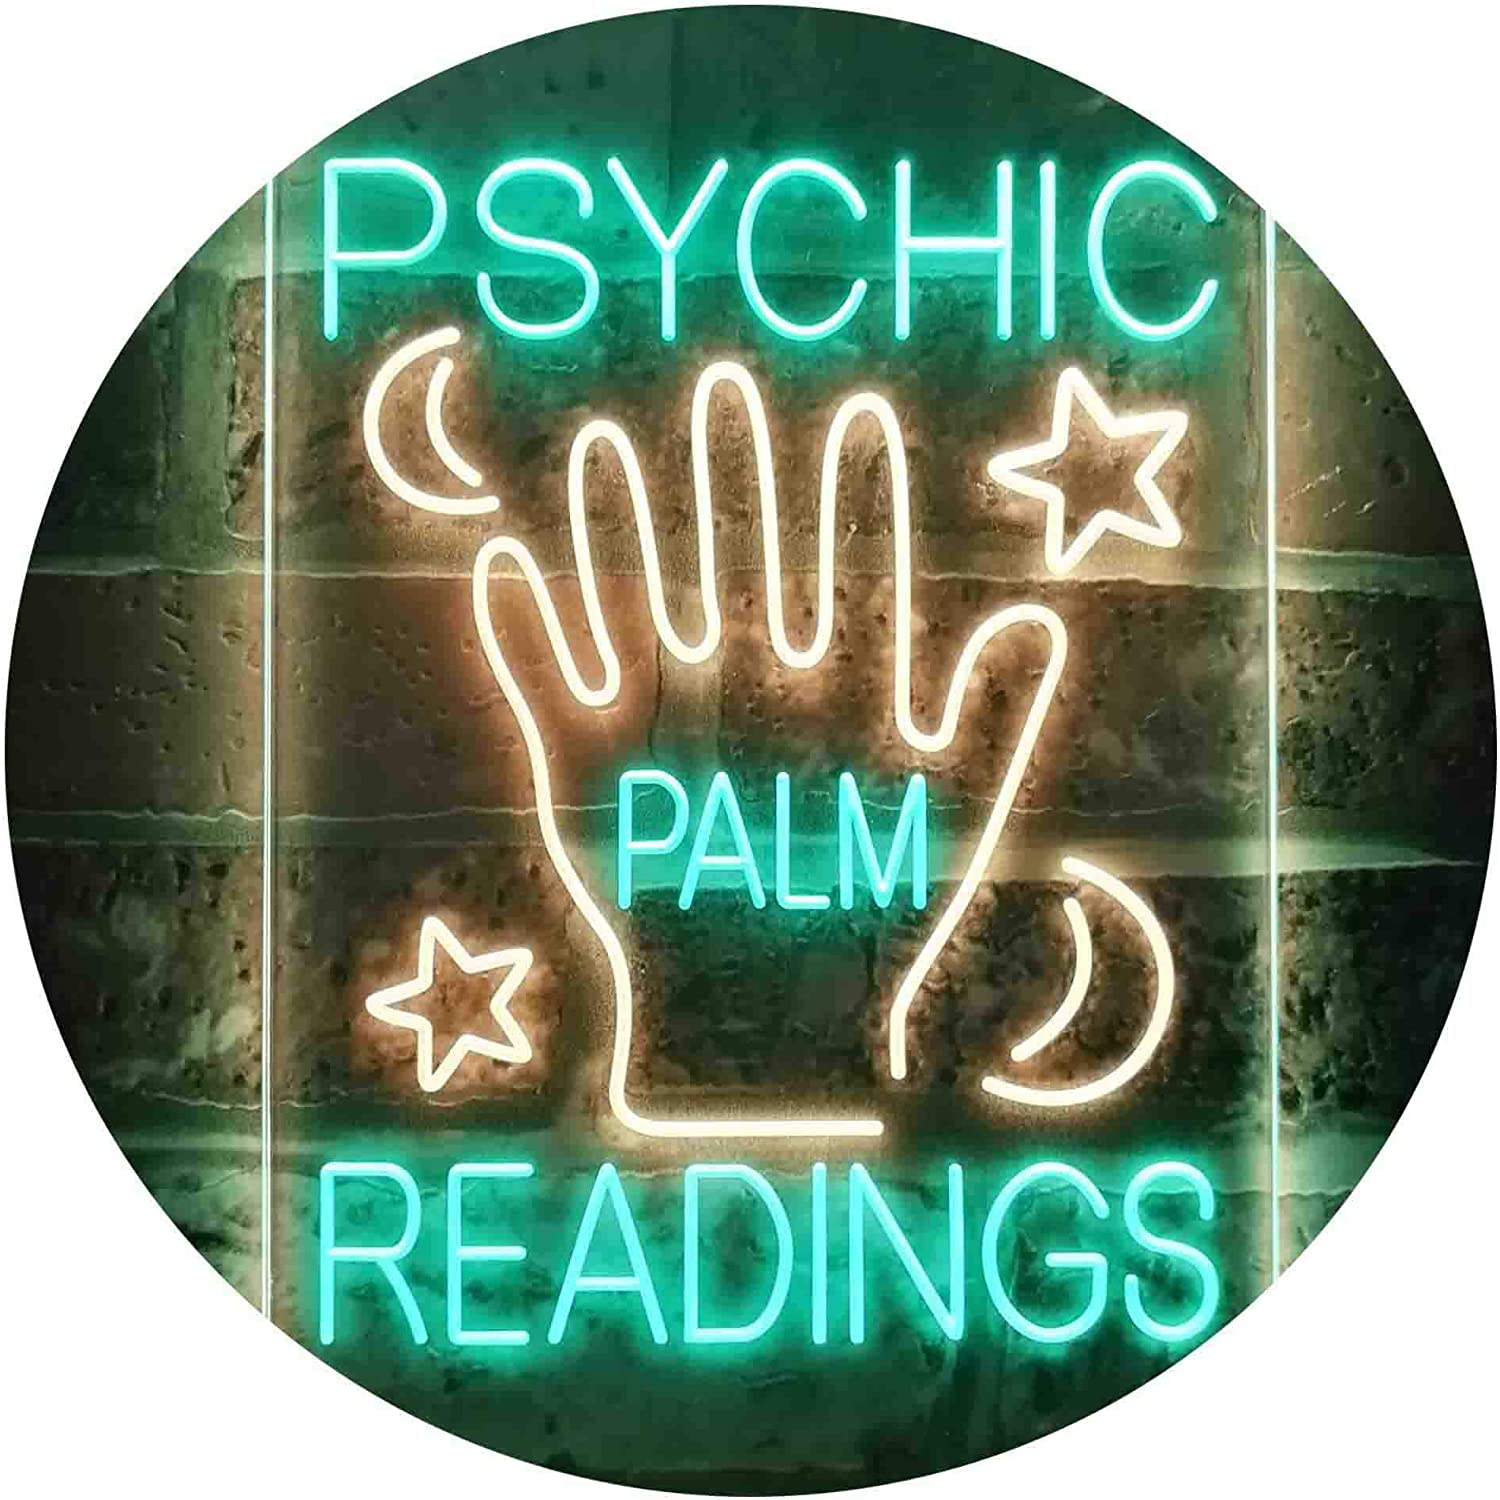 ADVPRO Psychic Baltimore Mall Palm Readings Dual Color LED Sign Neon Ye Max 88% OFF Green